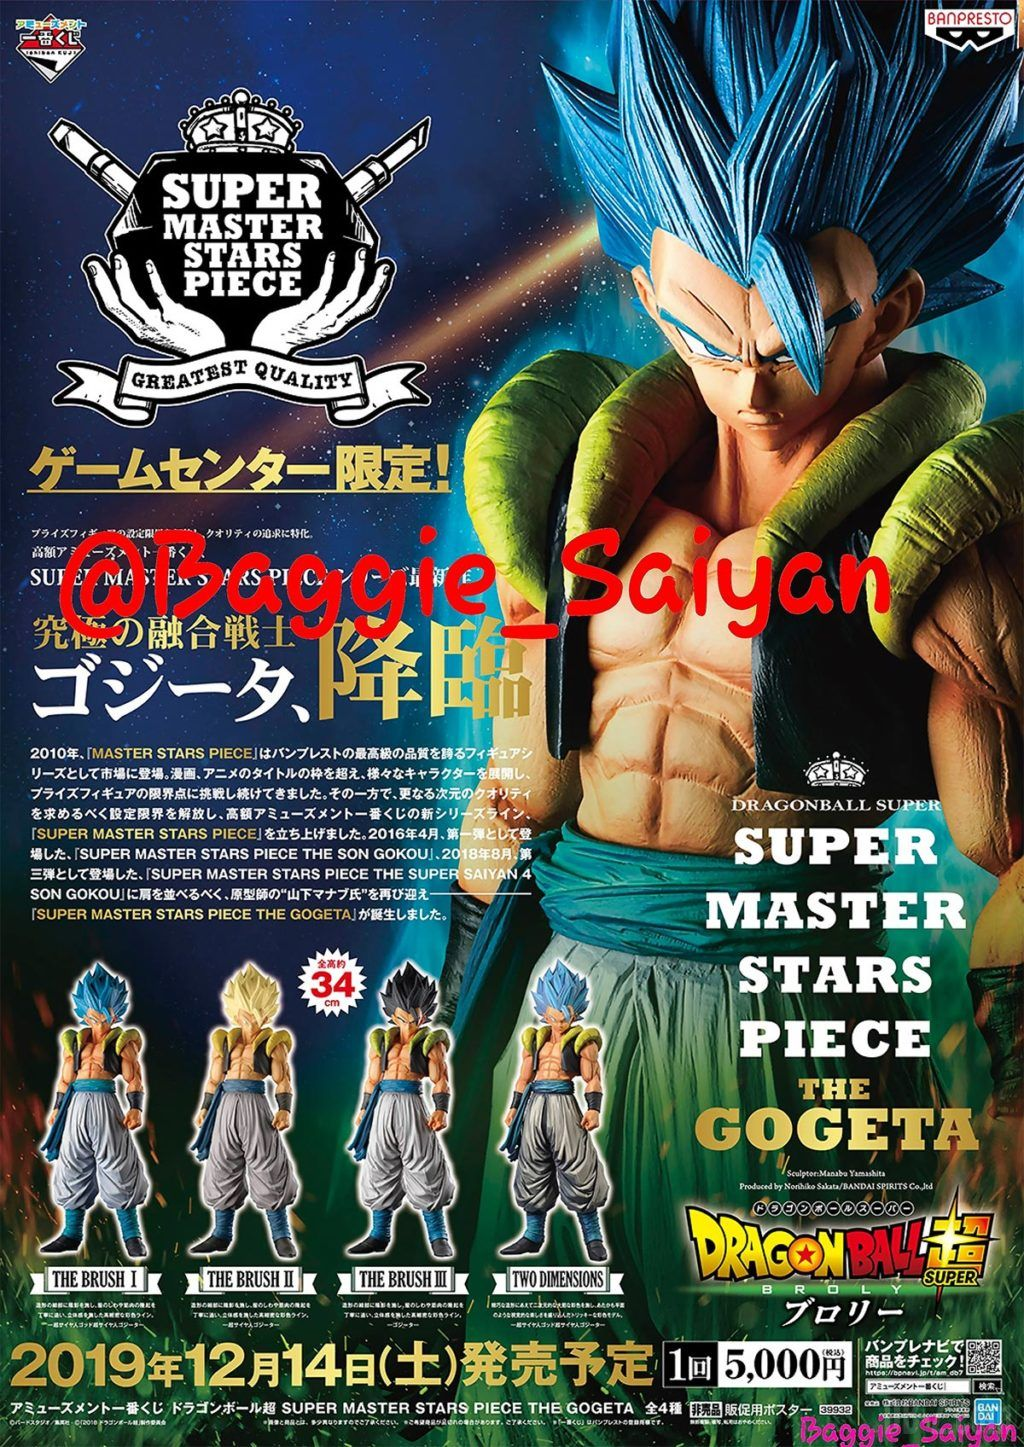 Super Masters Stars Piece The Gogeta Promo